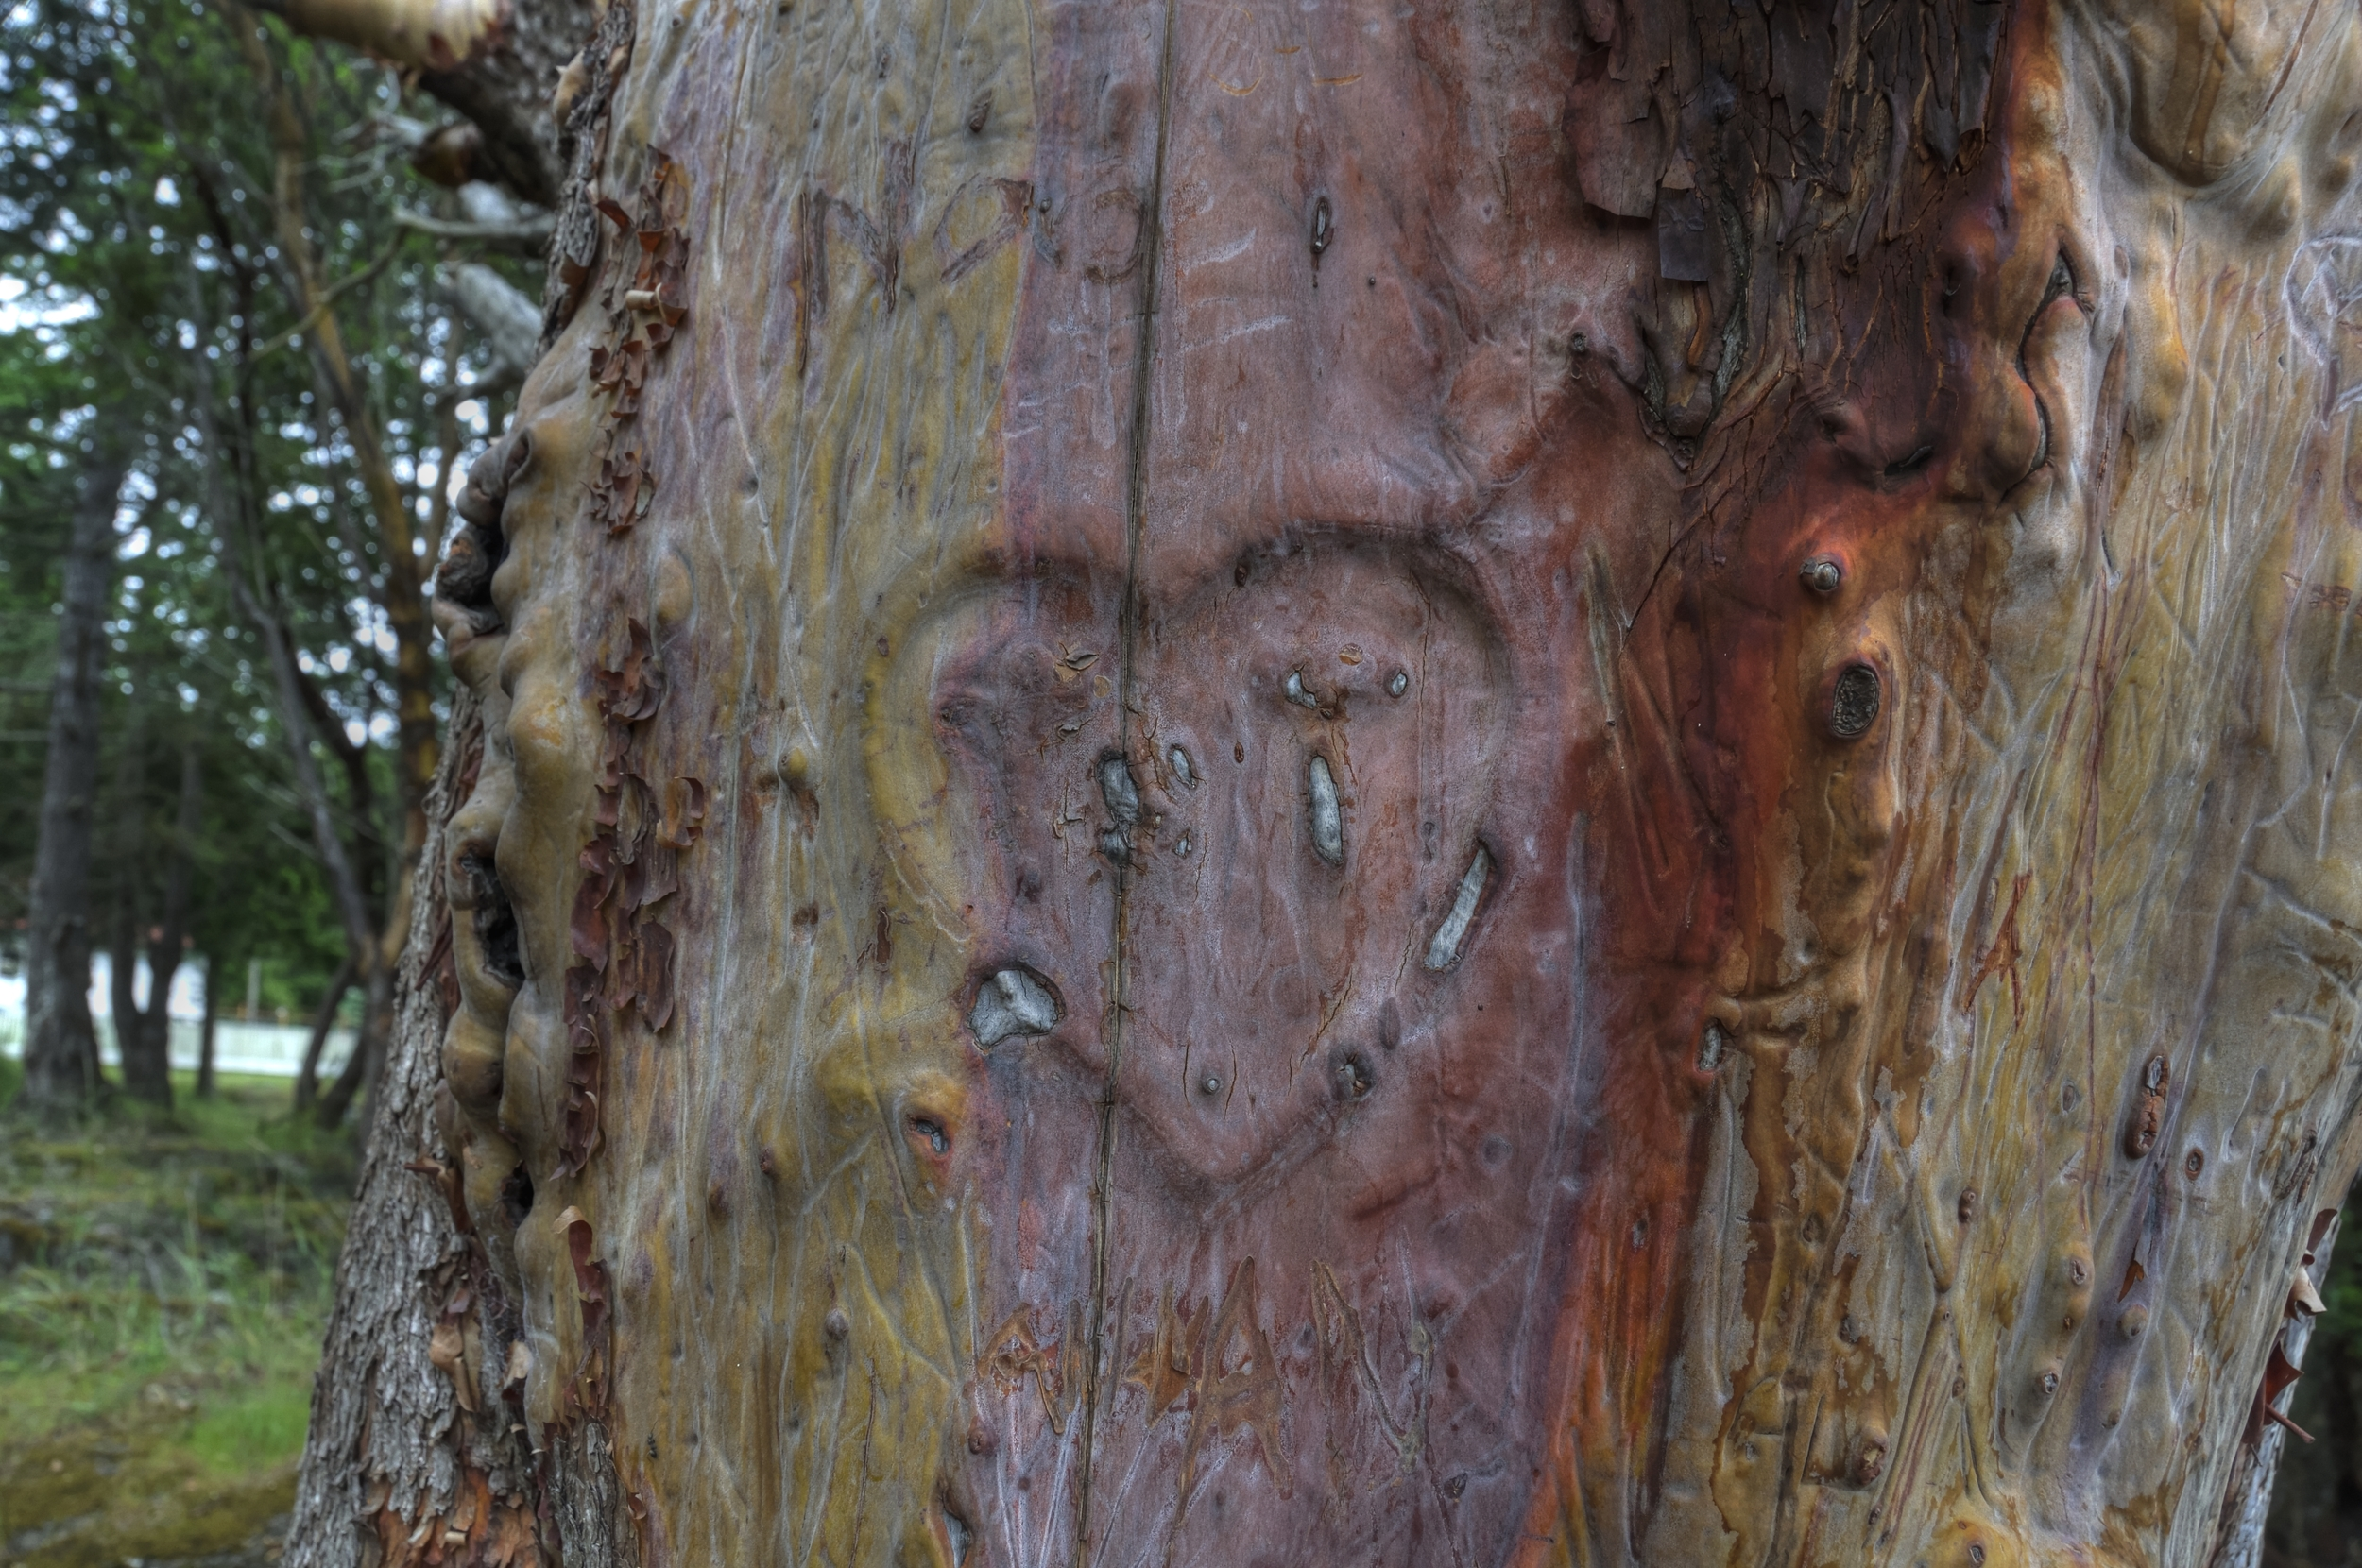 Please don't scar the trees, they are not into the modern primitive movement.